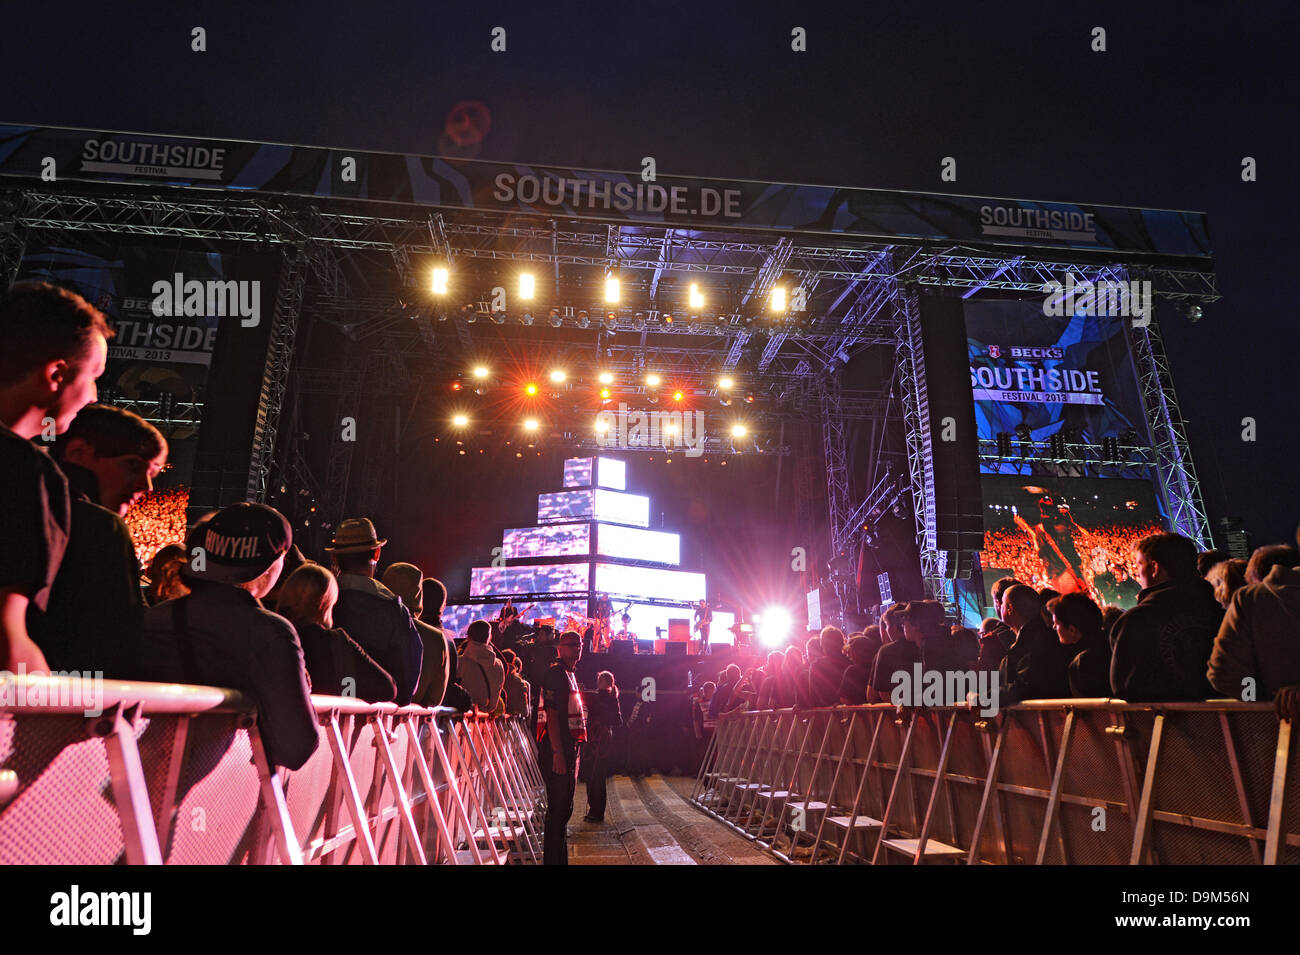 Neuhausen ob Eck, Germany. 21st June, 2013. The US-band 'The Smashing Pumpkins' perform on stage in front - Stock Image